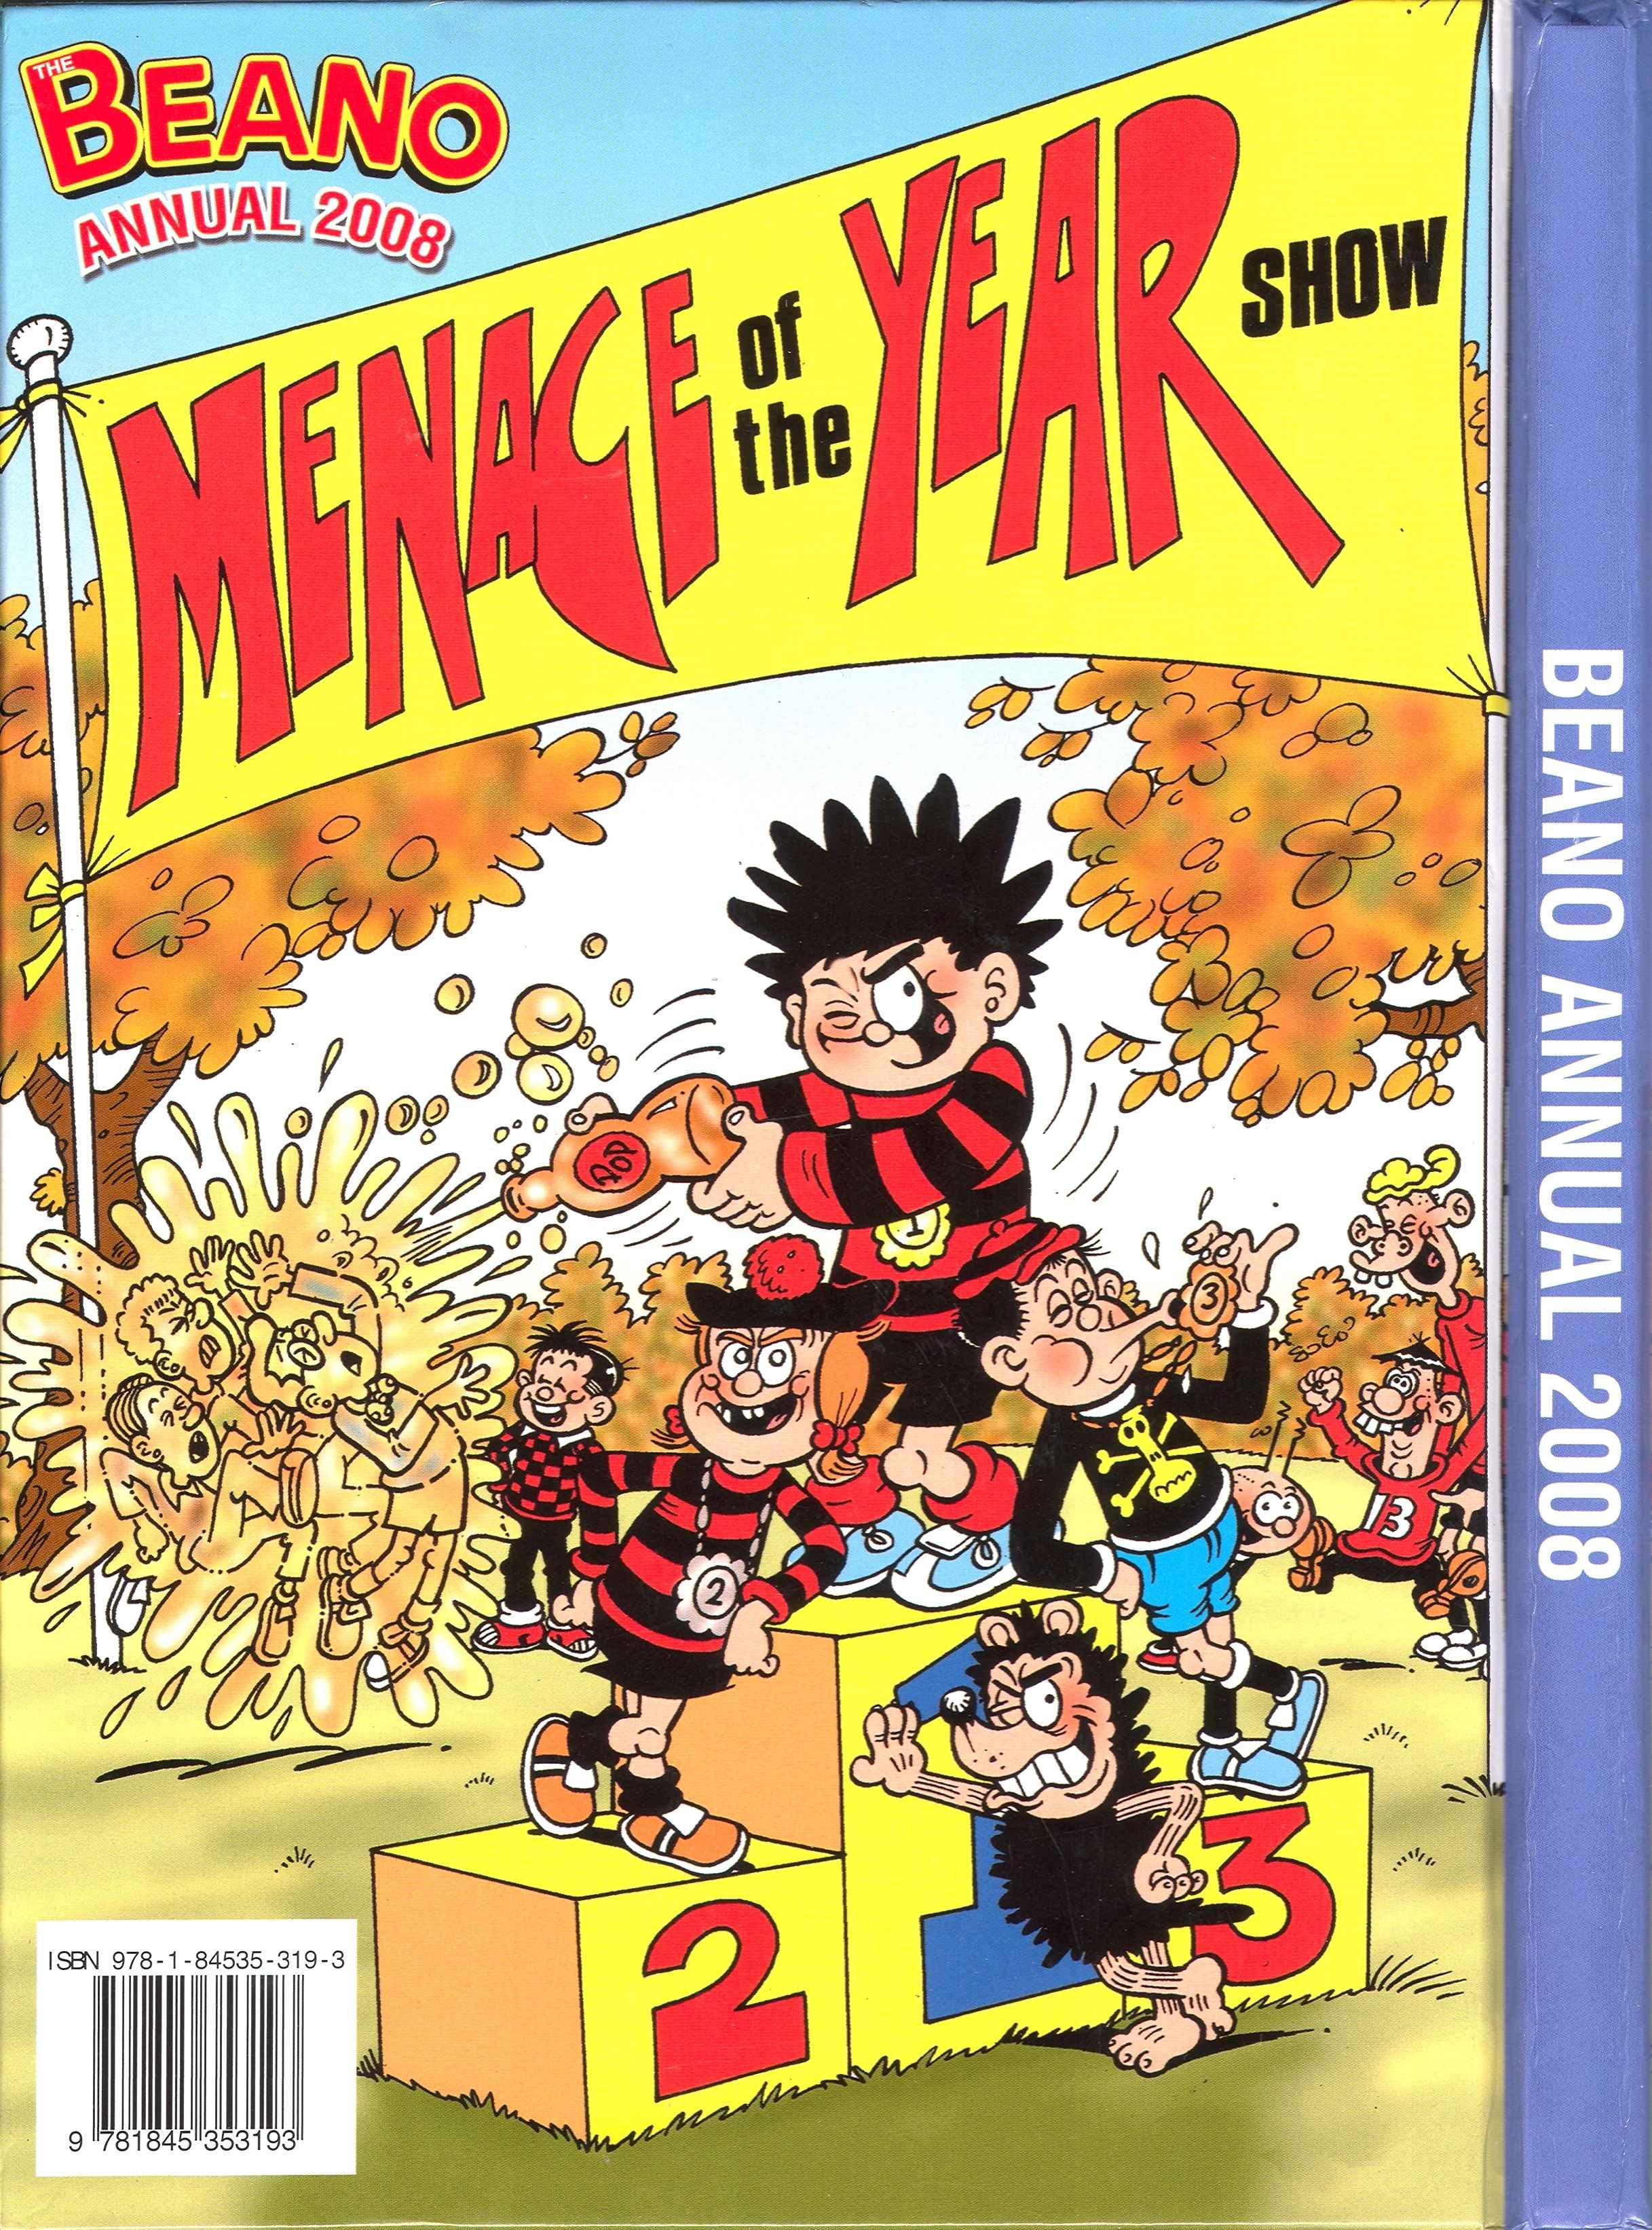 The Beano Book (Annual) 2008 Page 144